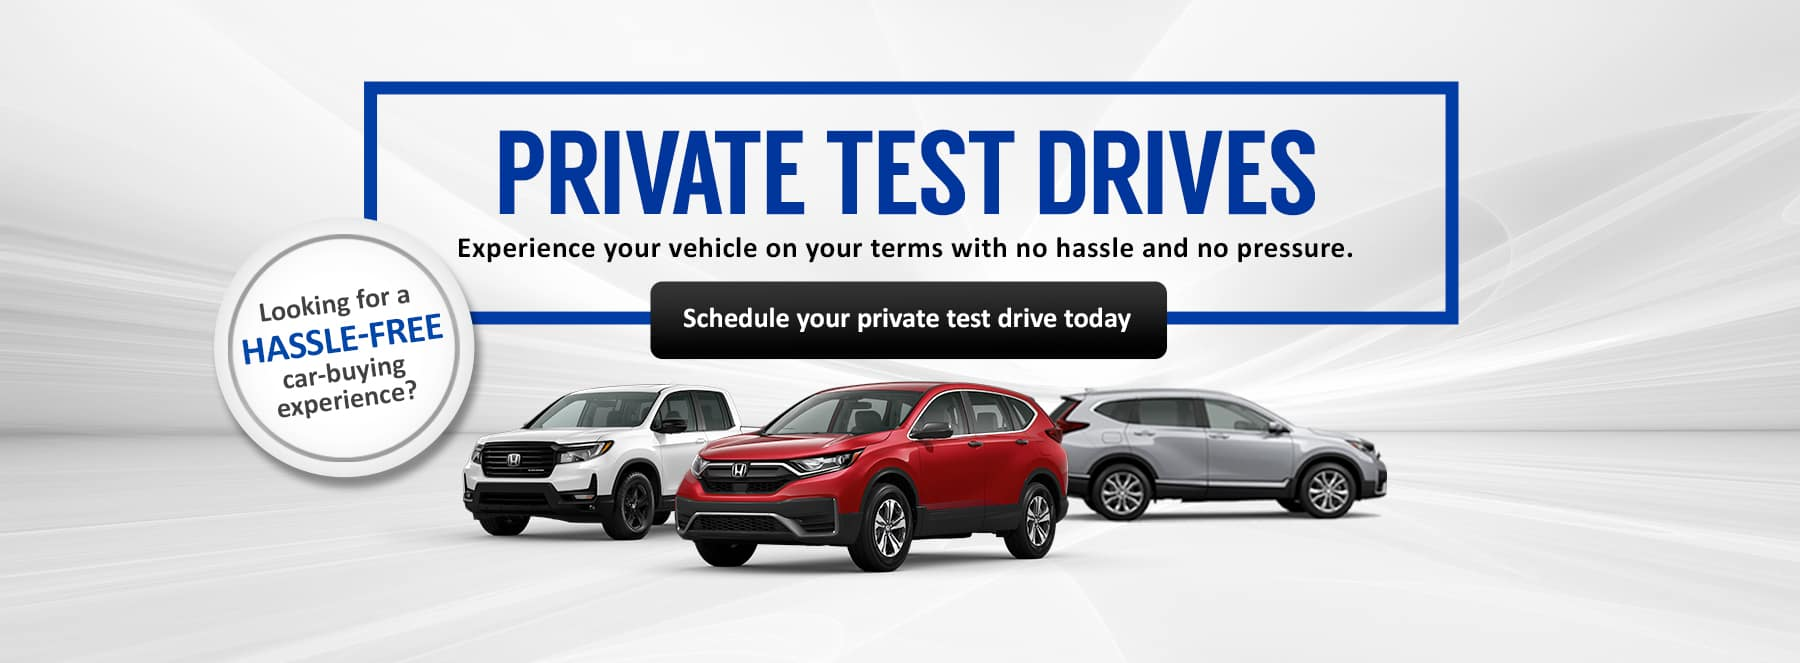 Private Test Drives